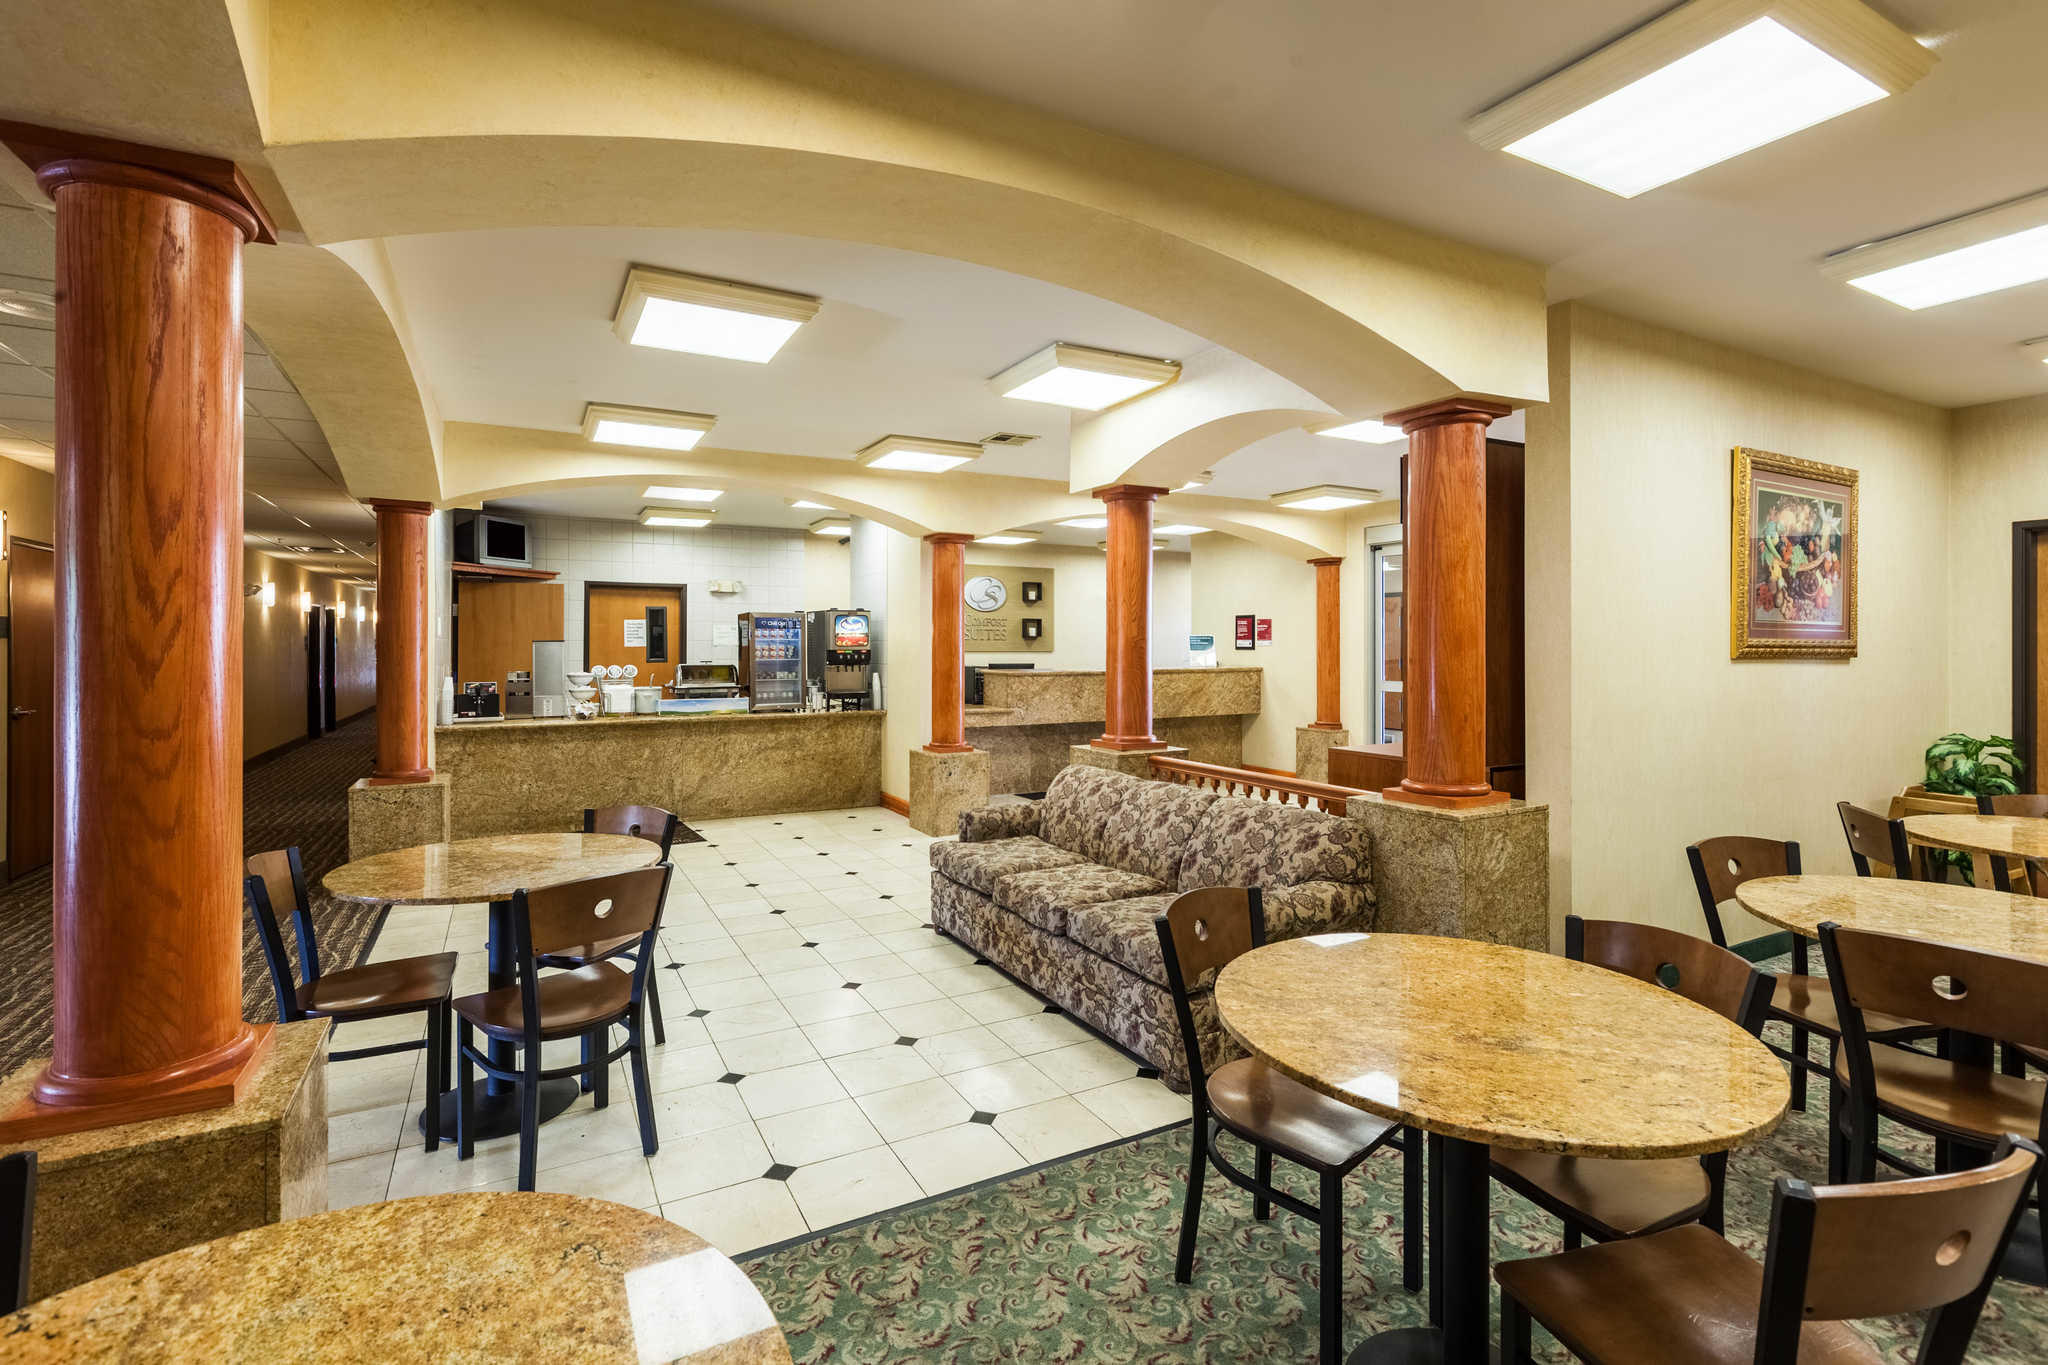 Rooms To Go In Mesquite Texas